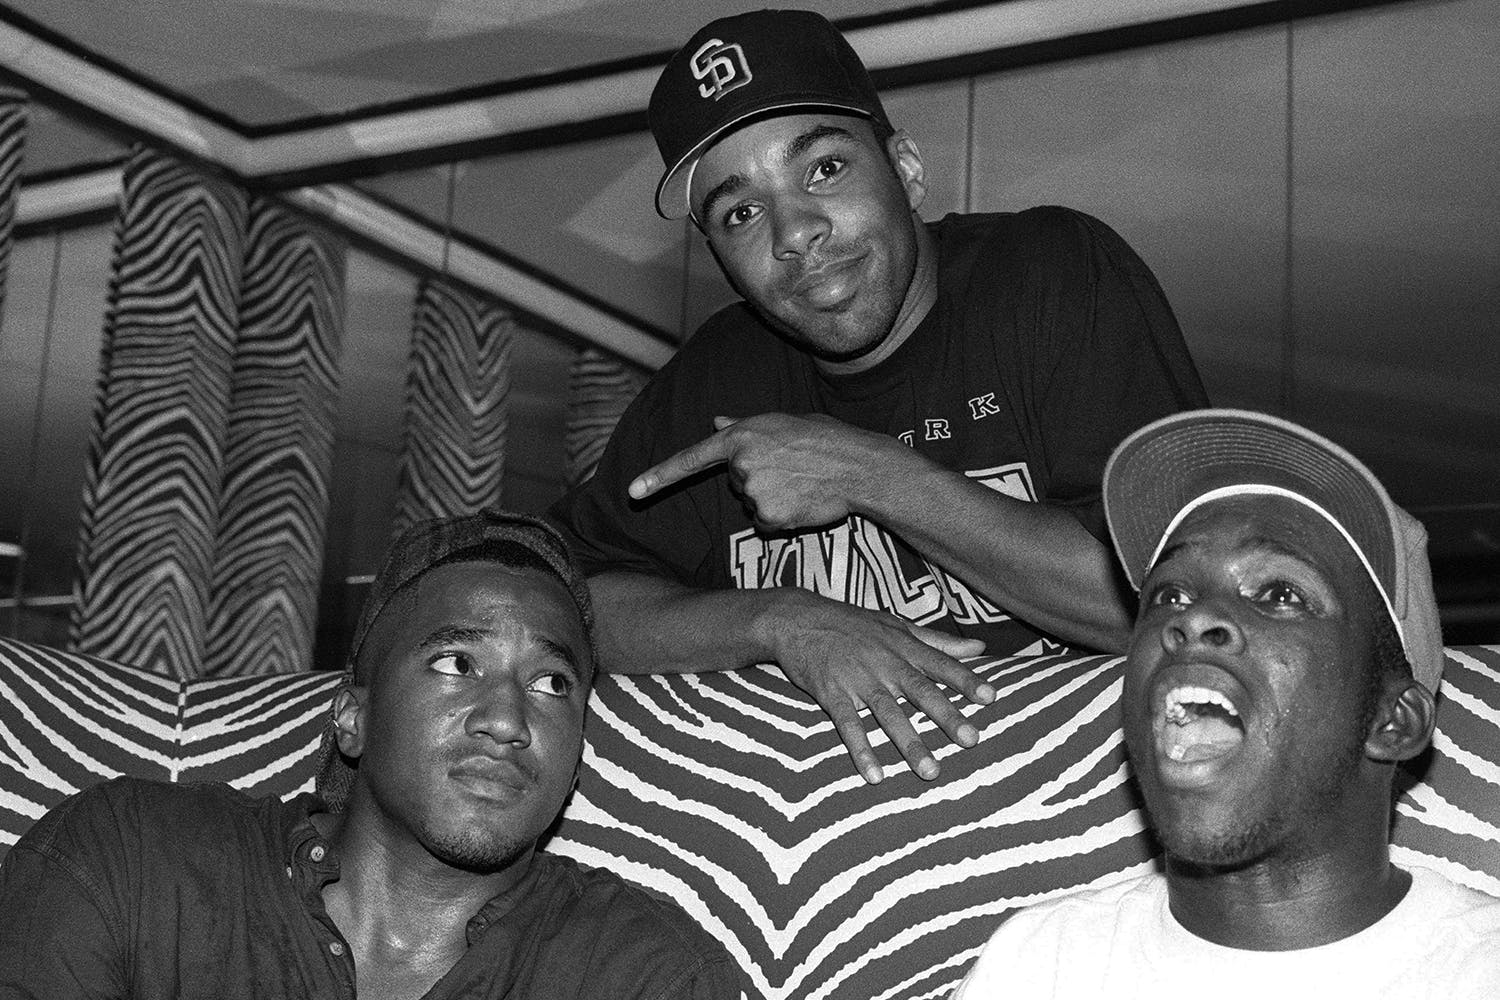 Actor Allen Payne and A Tribe Called Quest attend an album-release party for A Tribe Called Quest's